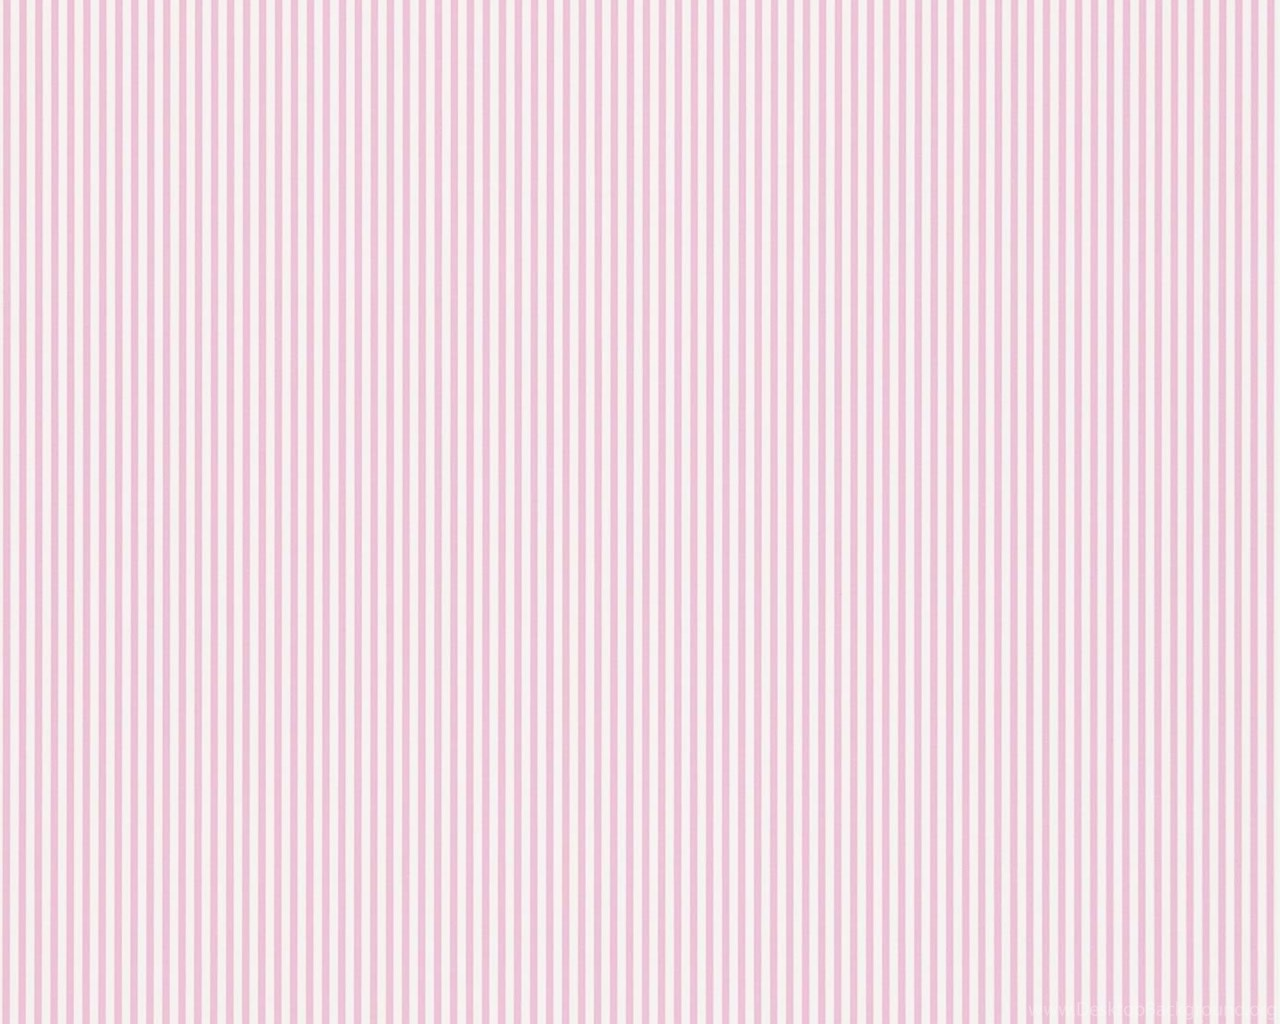 Pink And White Stripe Wallpapers Widescreen HD Desktop